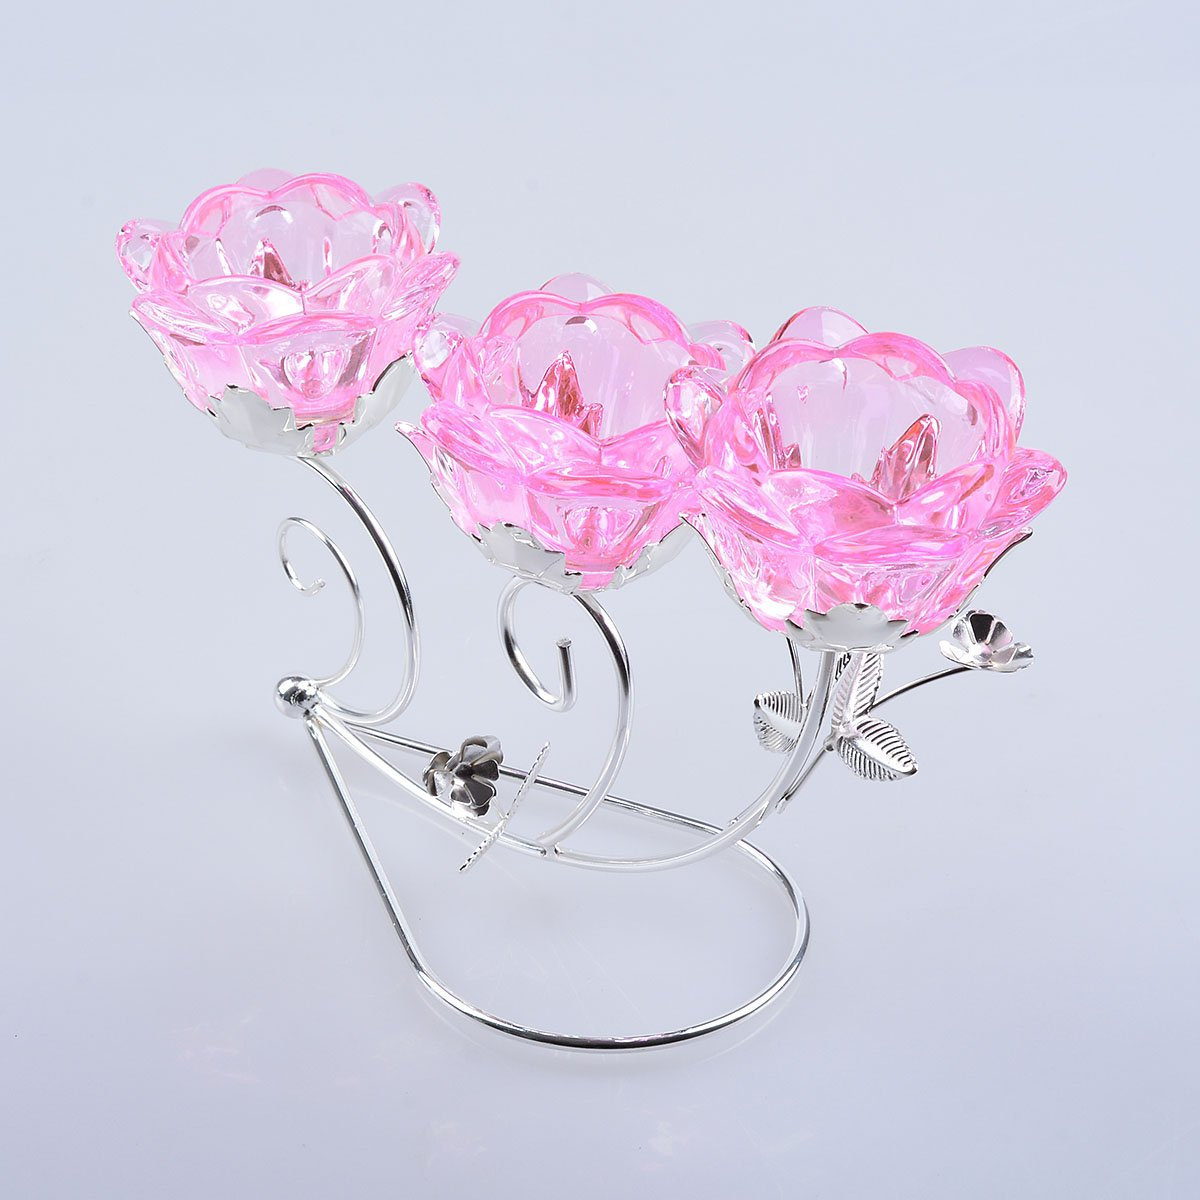 LONGWIN Rose Blossom 3-tealight Candle Holders Wedding Centerpieces Peach